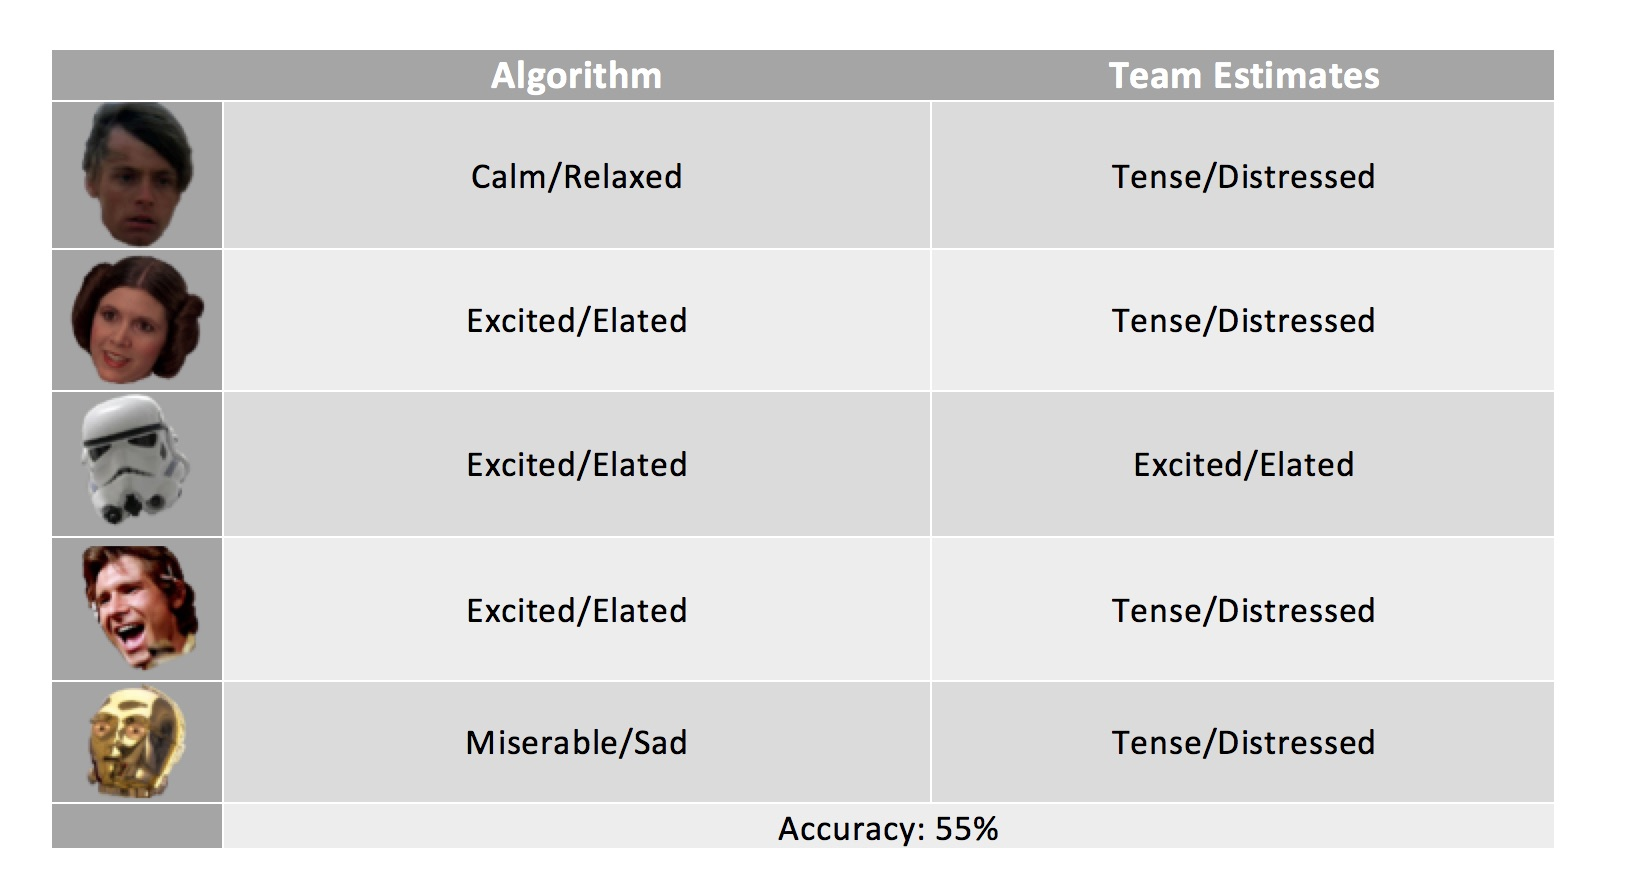 Algorithm performance vs. team assessment